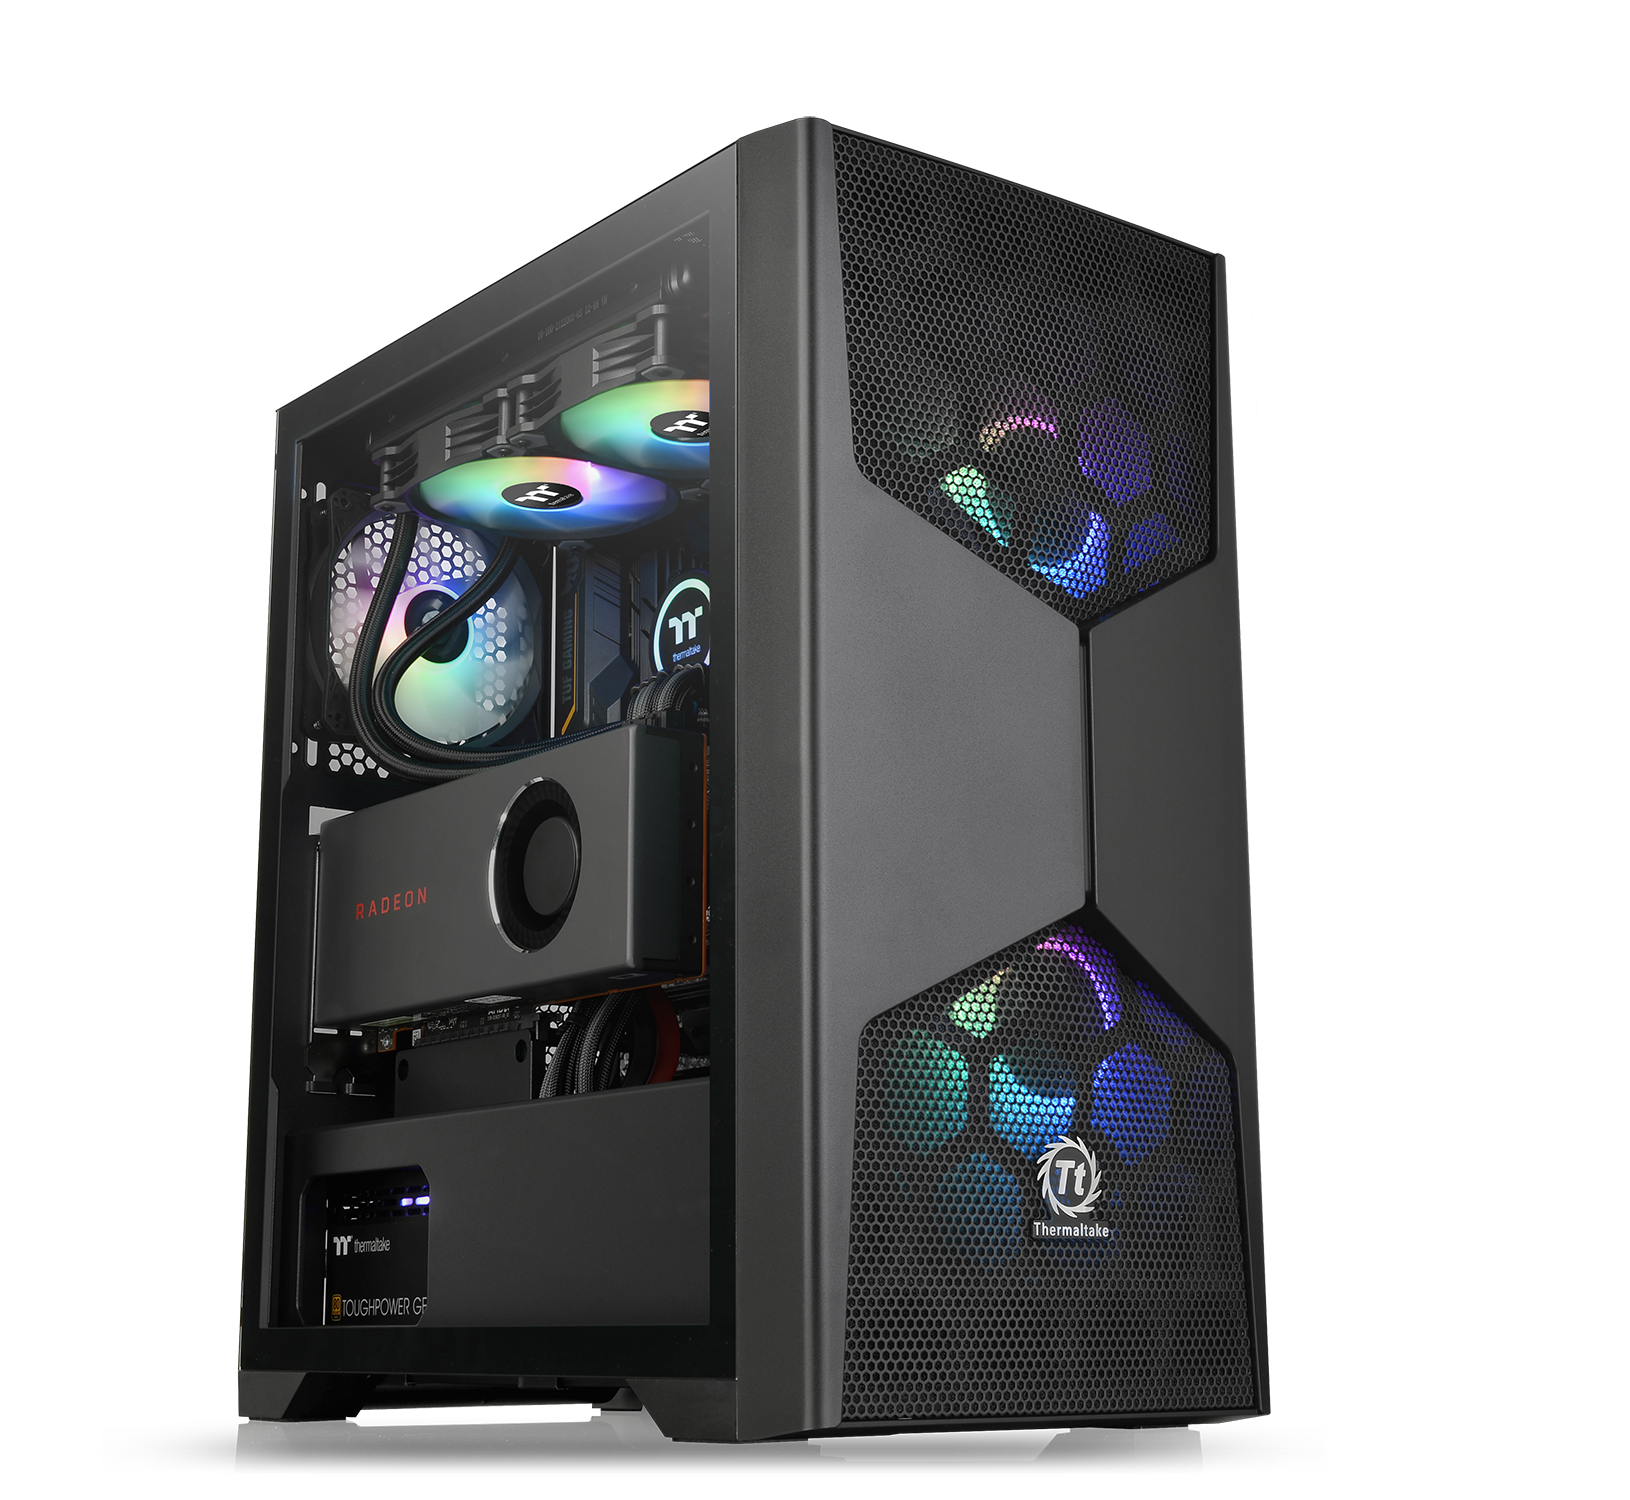 NdP - Thermaltake Nueva Serie Commander G Cristal Templado ARGB Mid-Tower Chassis